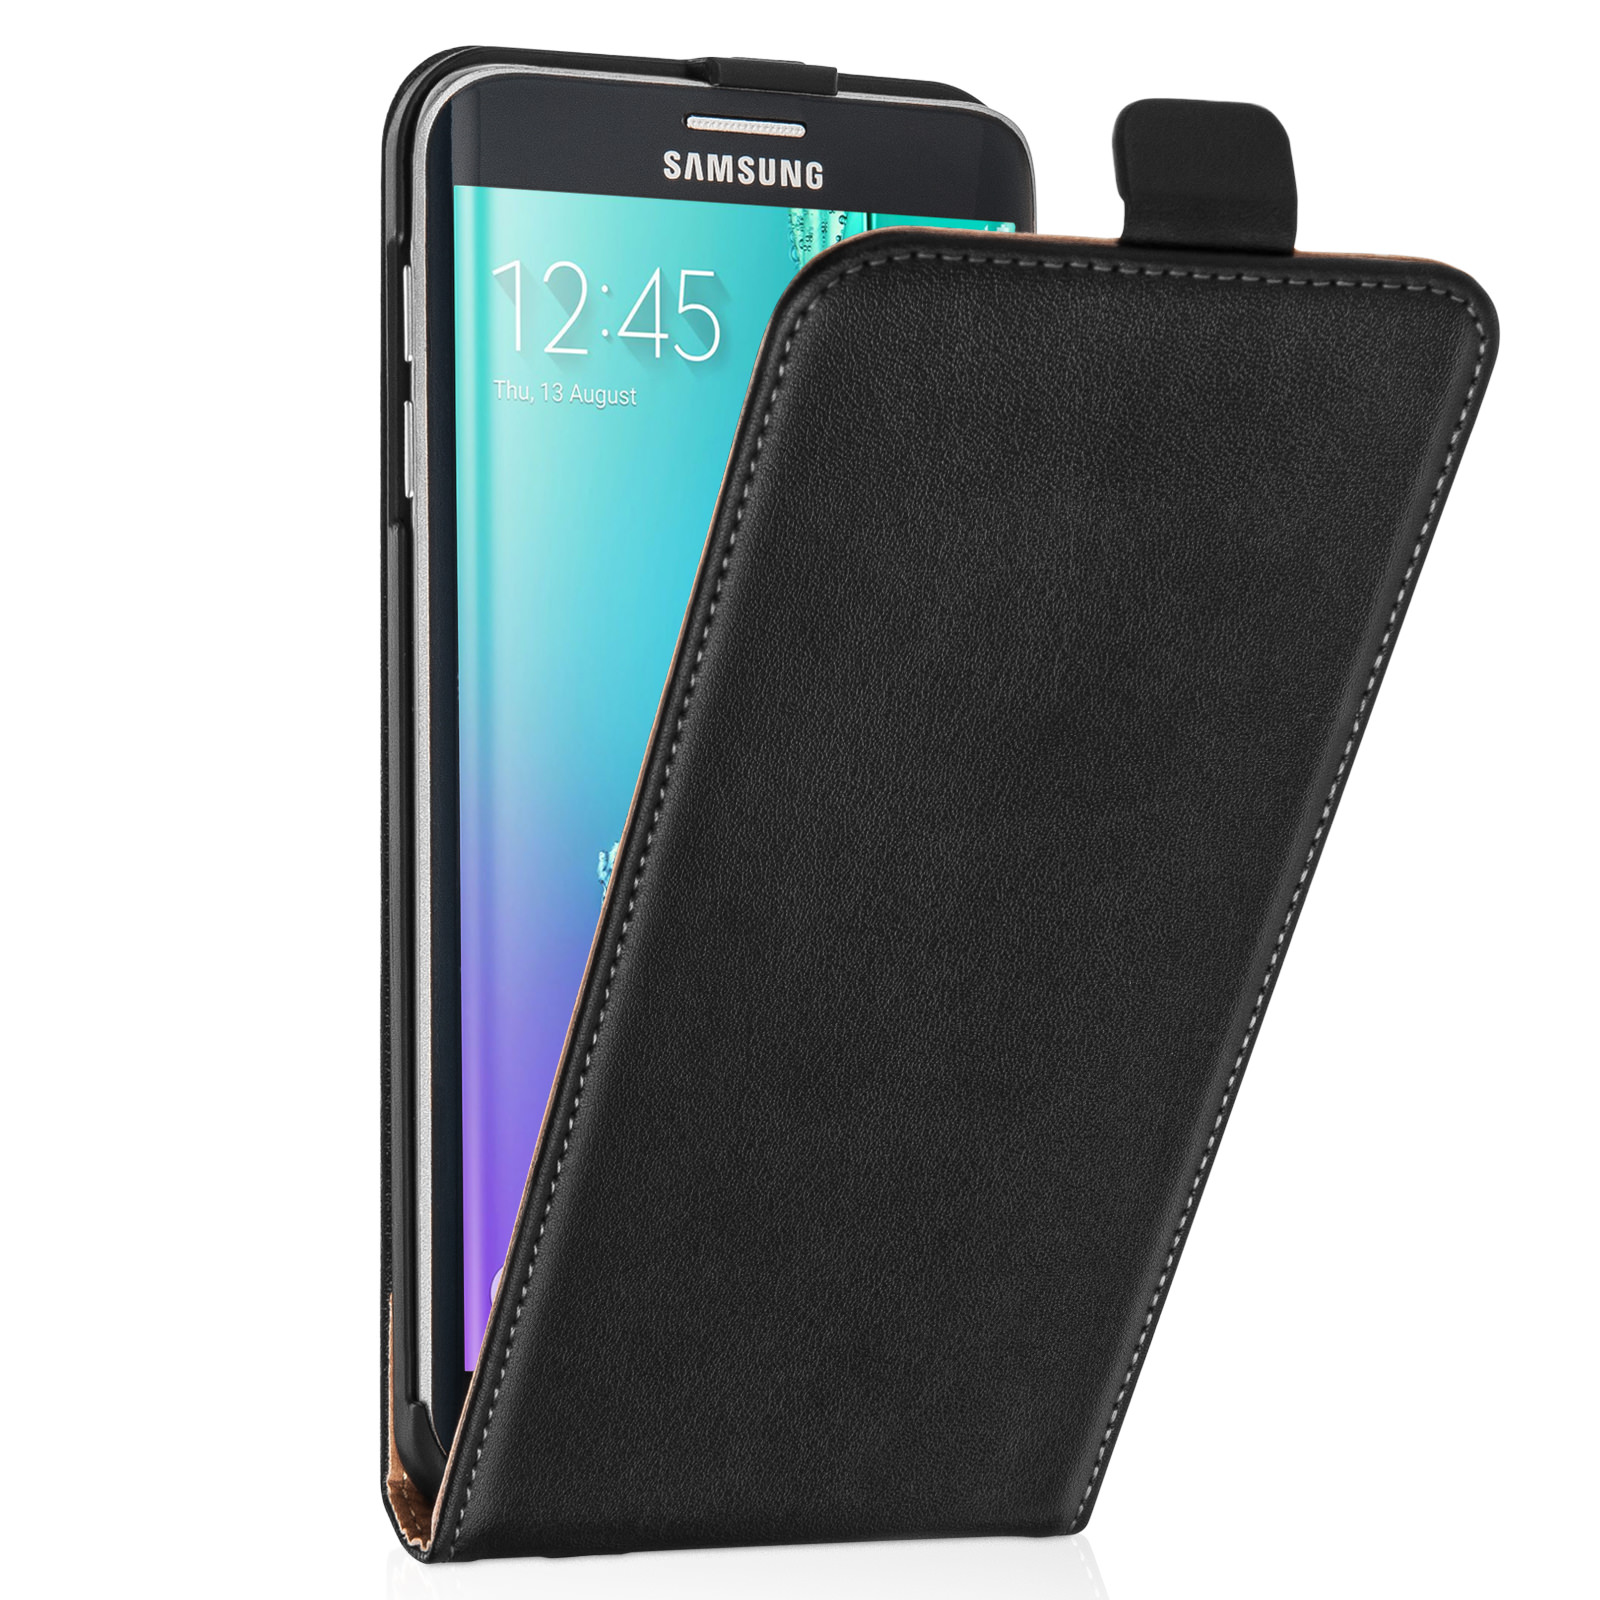 caseflex samsung galaxy s6 edge plus real leather flip. Black Bedroom Furniture Sets. Home Design Ideas